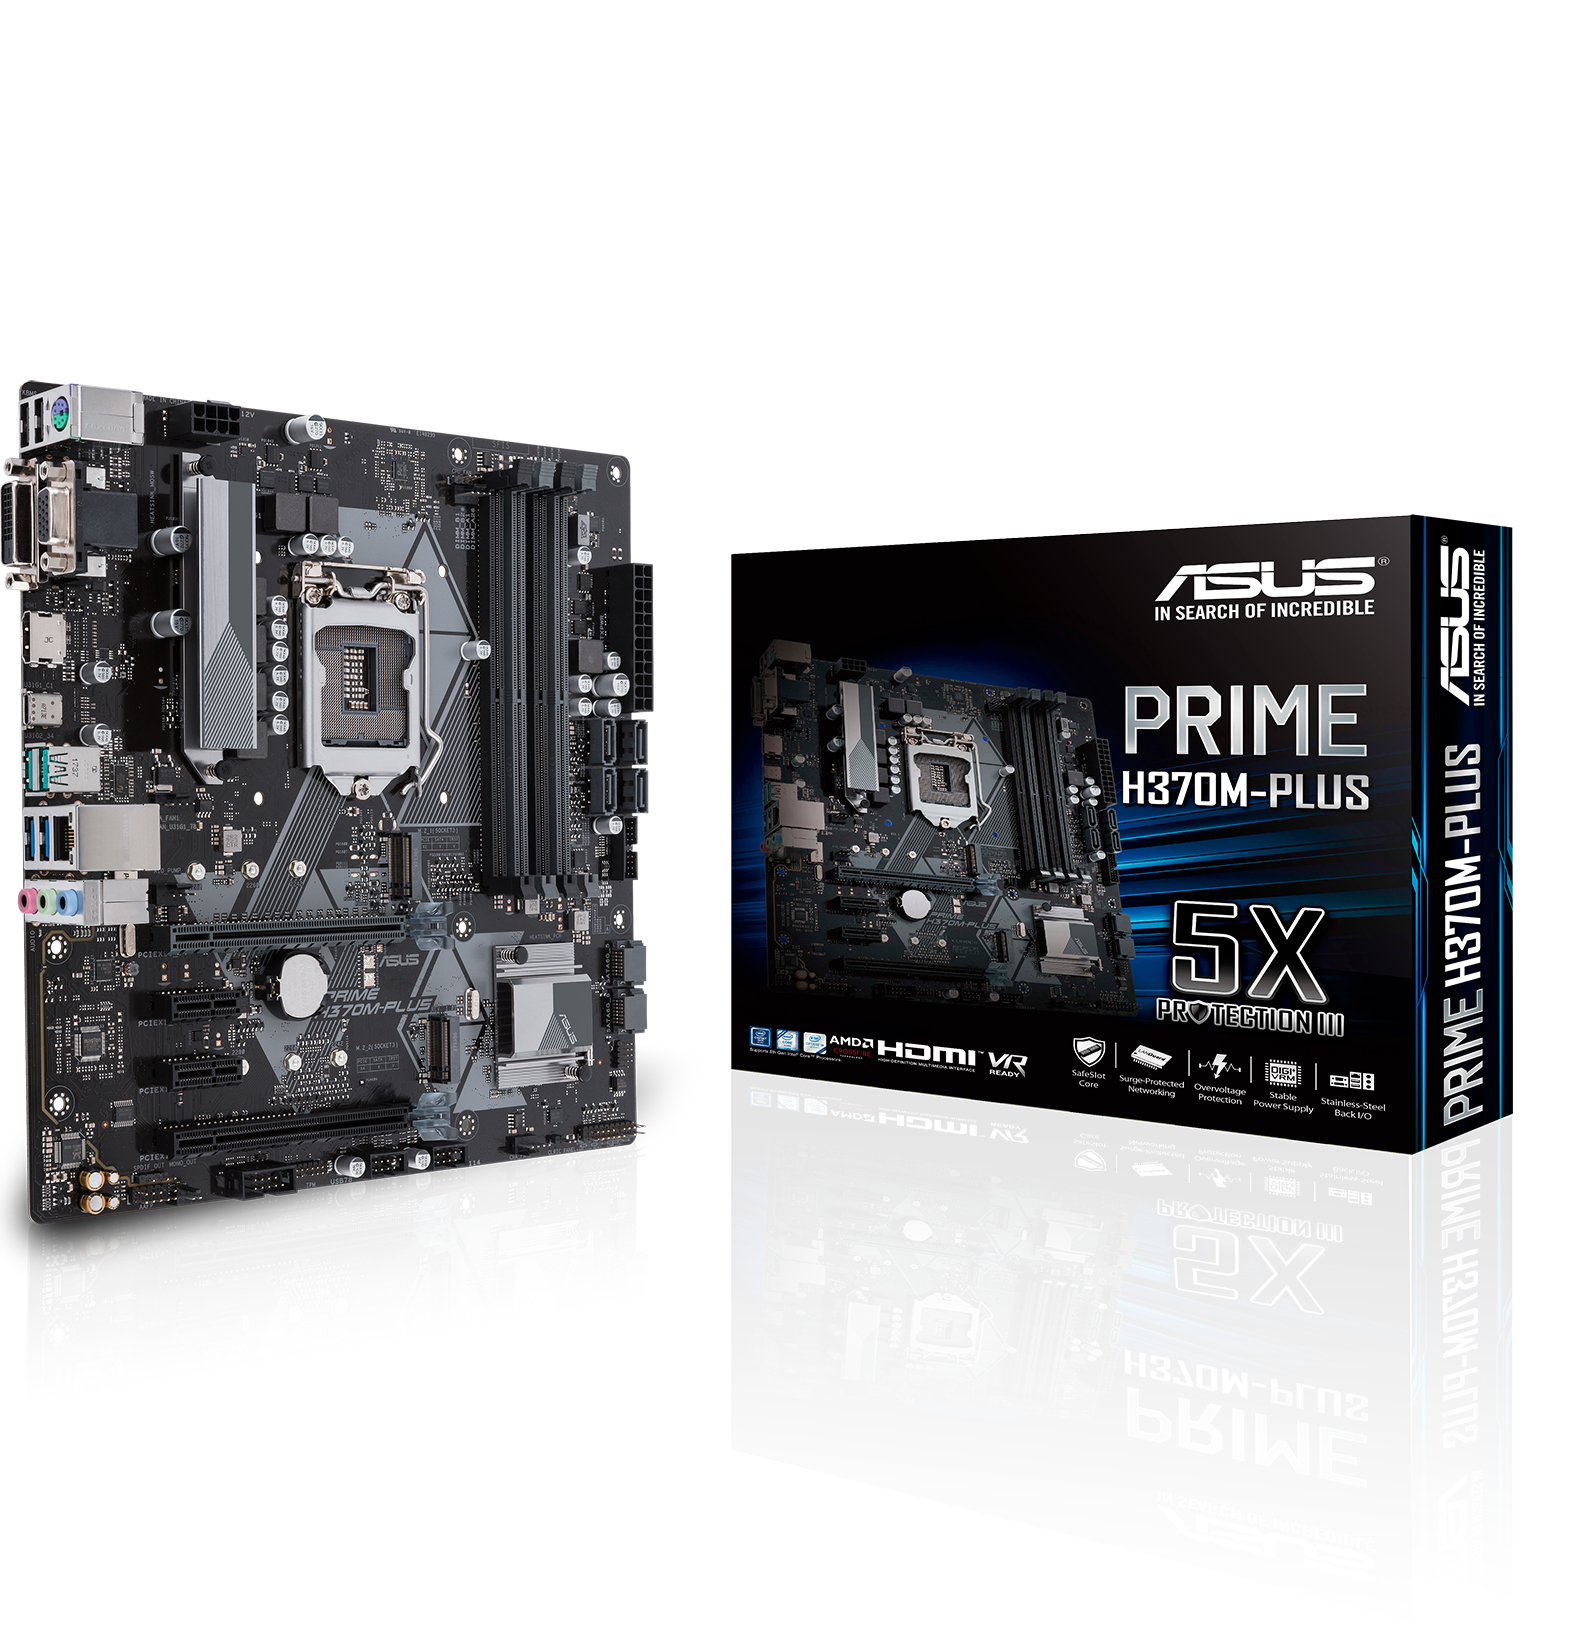 PRIME H370M-PLUS INTEL H370 LGA 1151 (SOCKET H4) MICROATX PLACA BASE